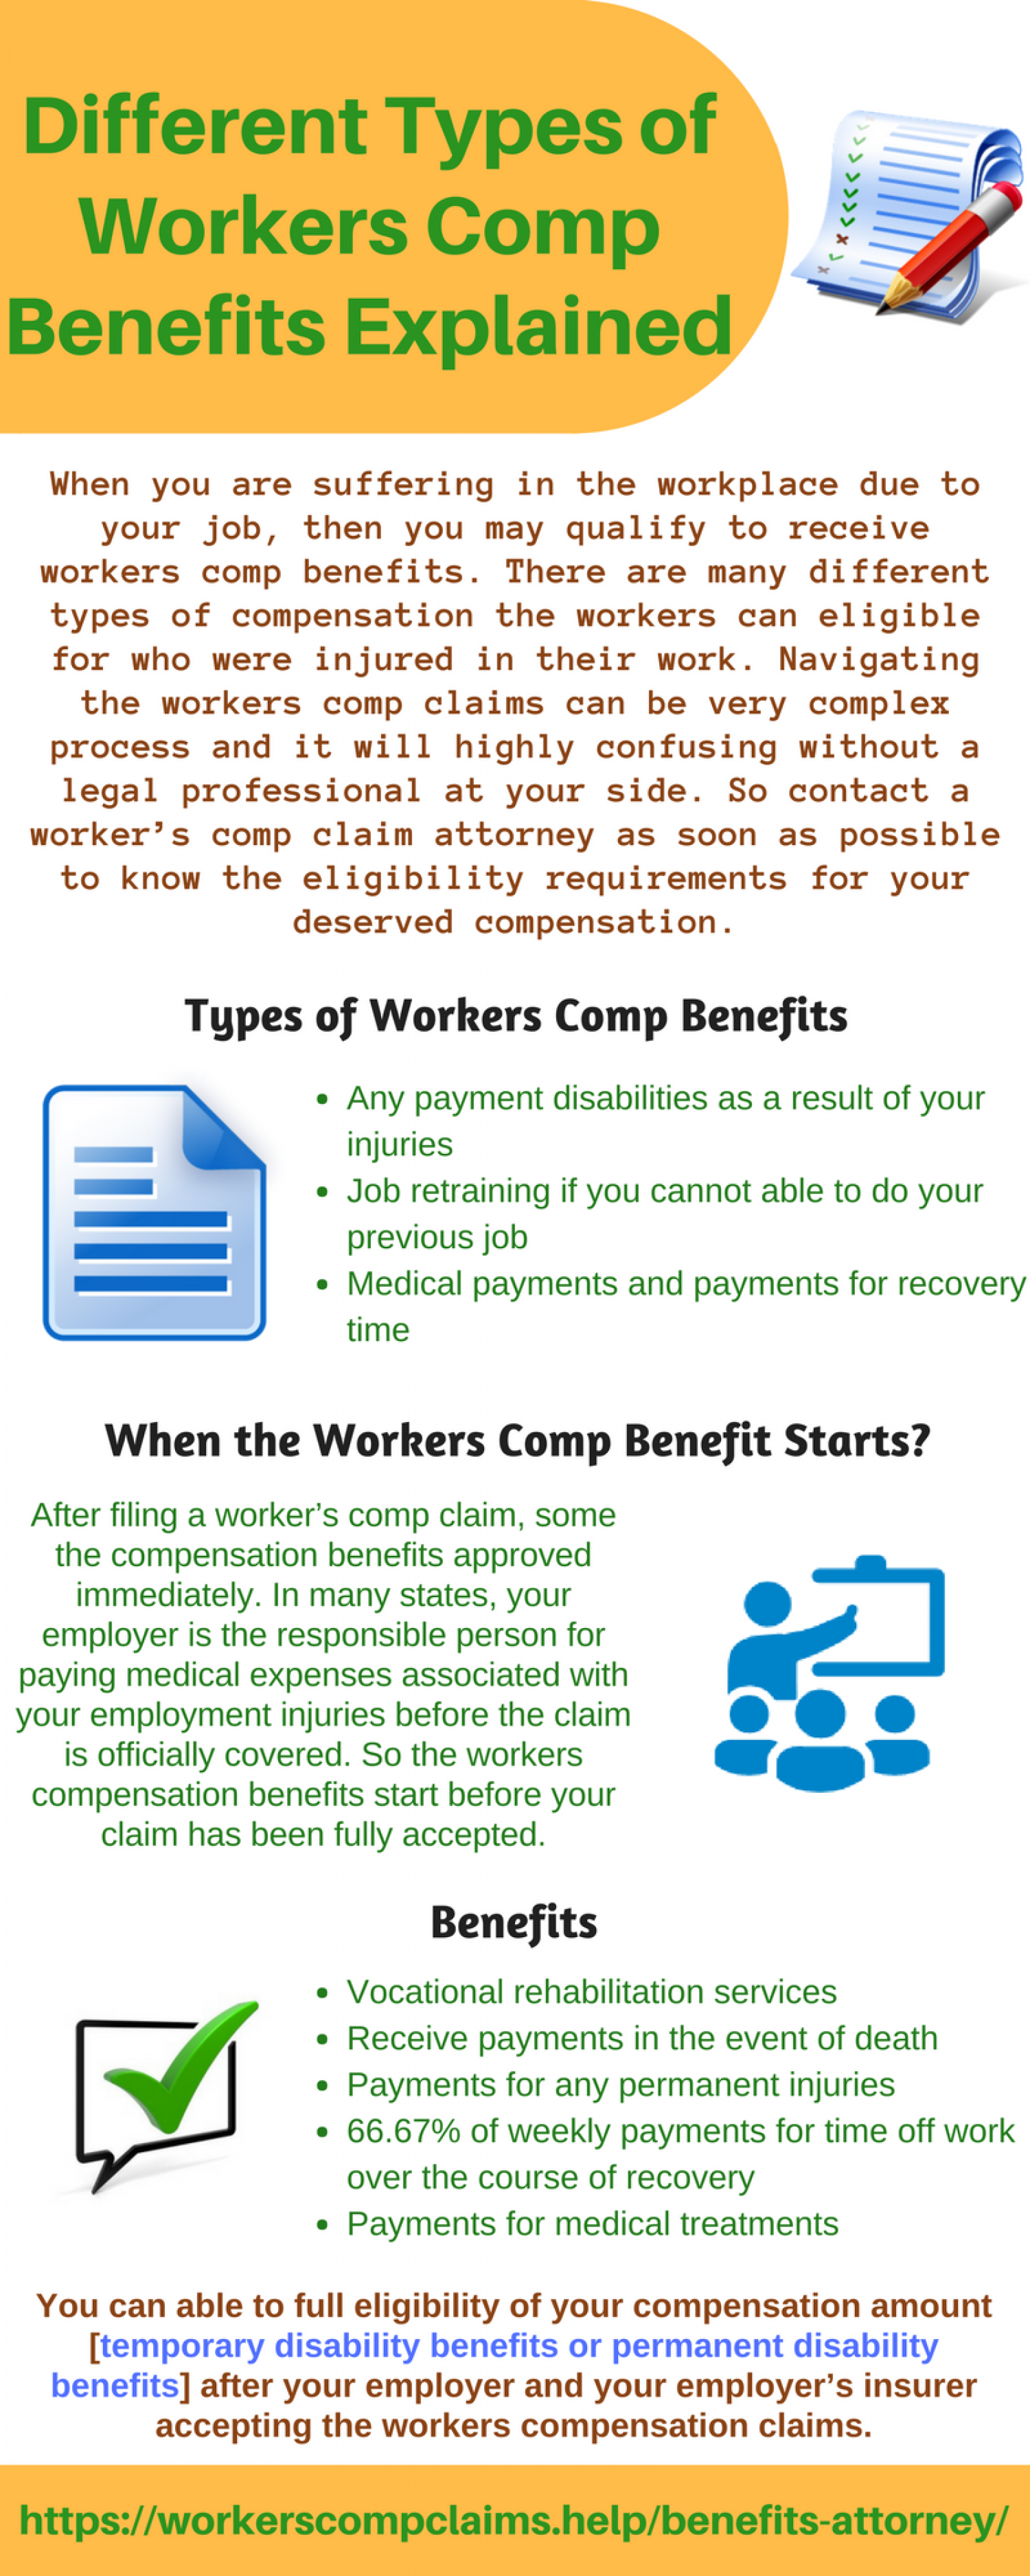 Different Types of Workers Comp Benefits Explained